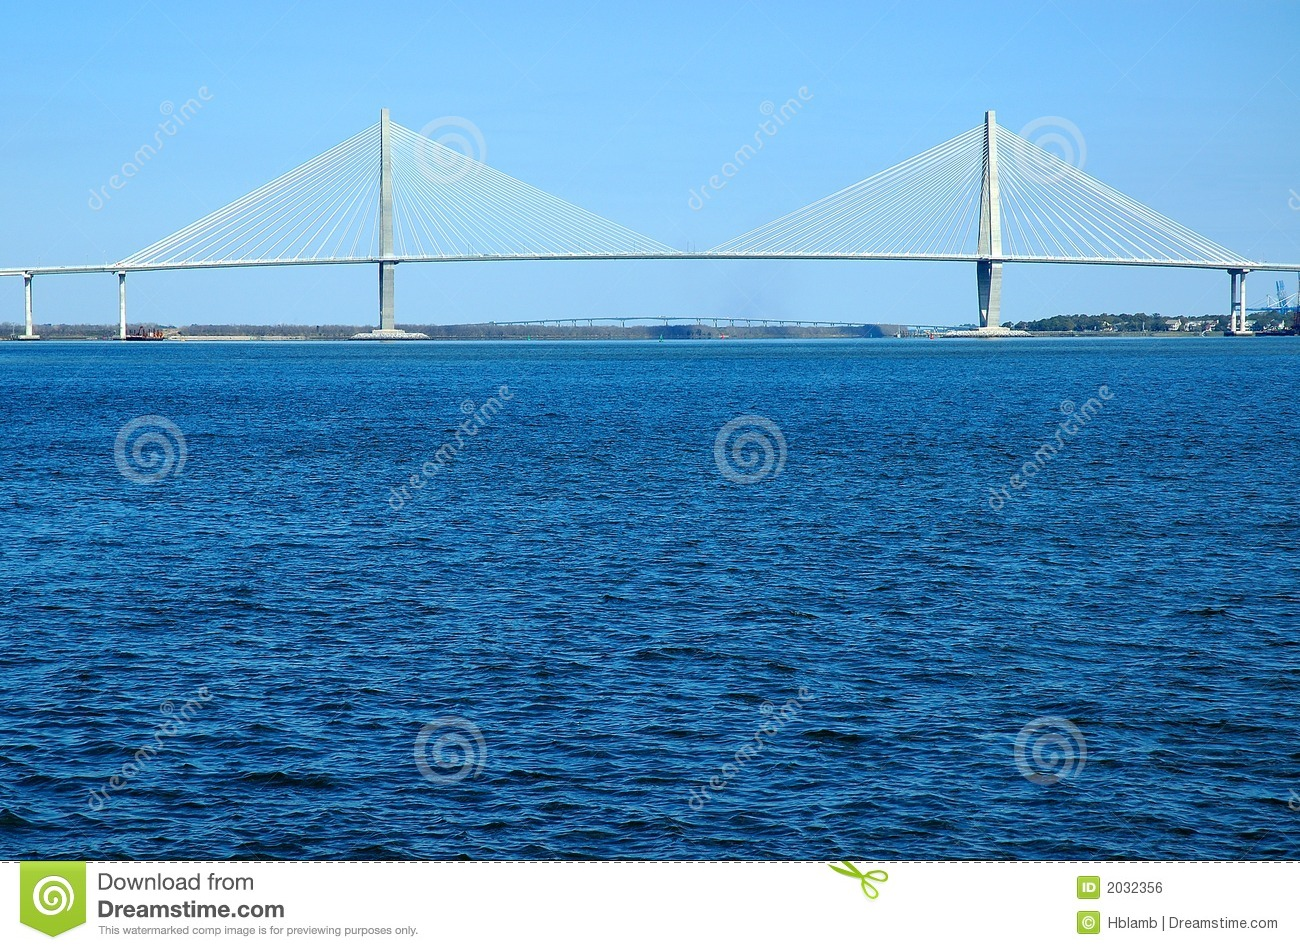 Suspension Bridge Over Water Royalty Free Stock Image   Image  2032356